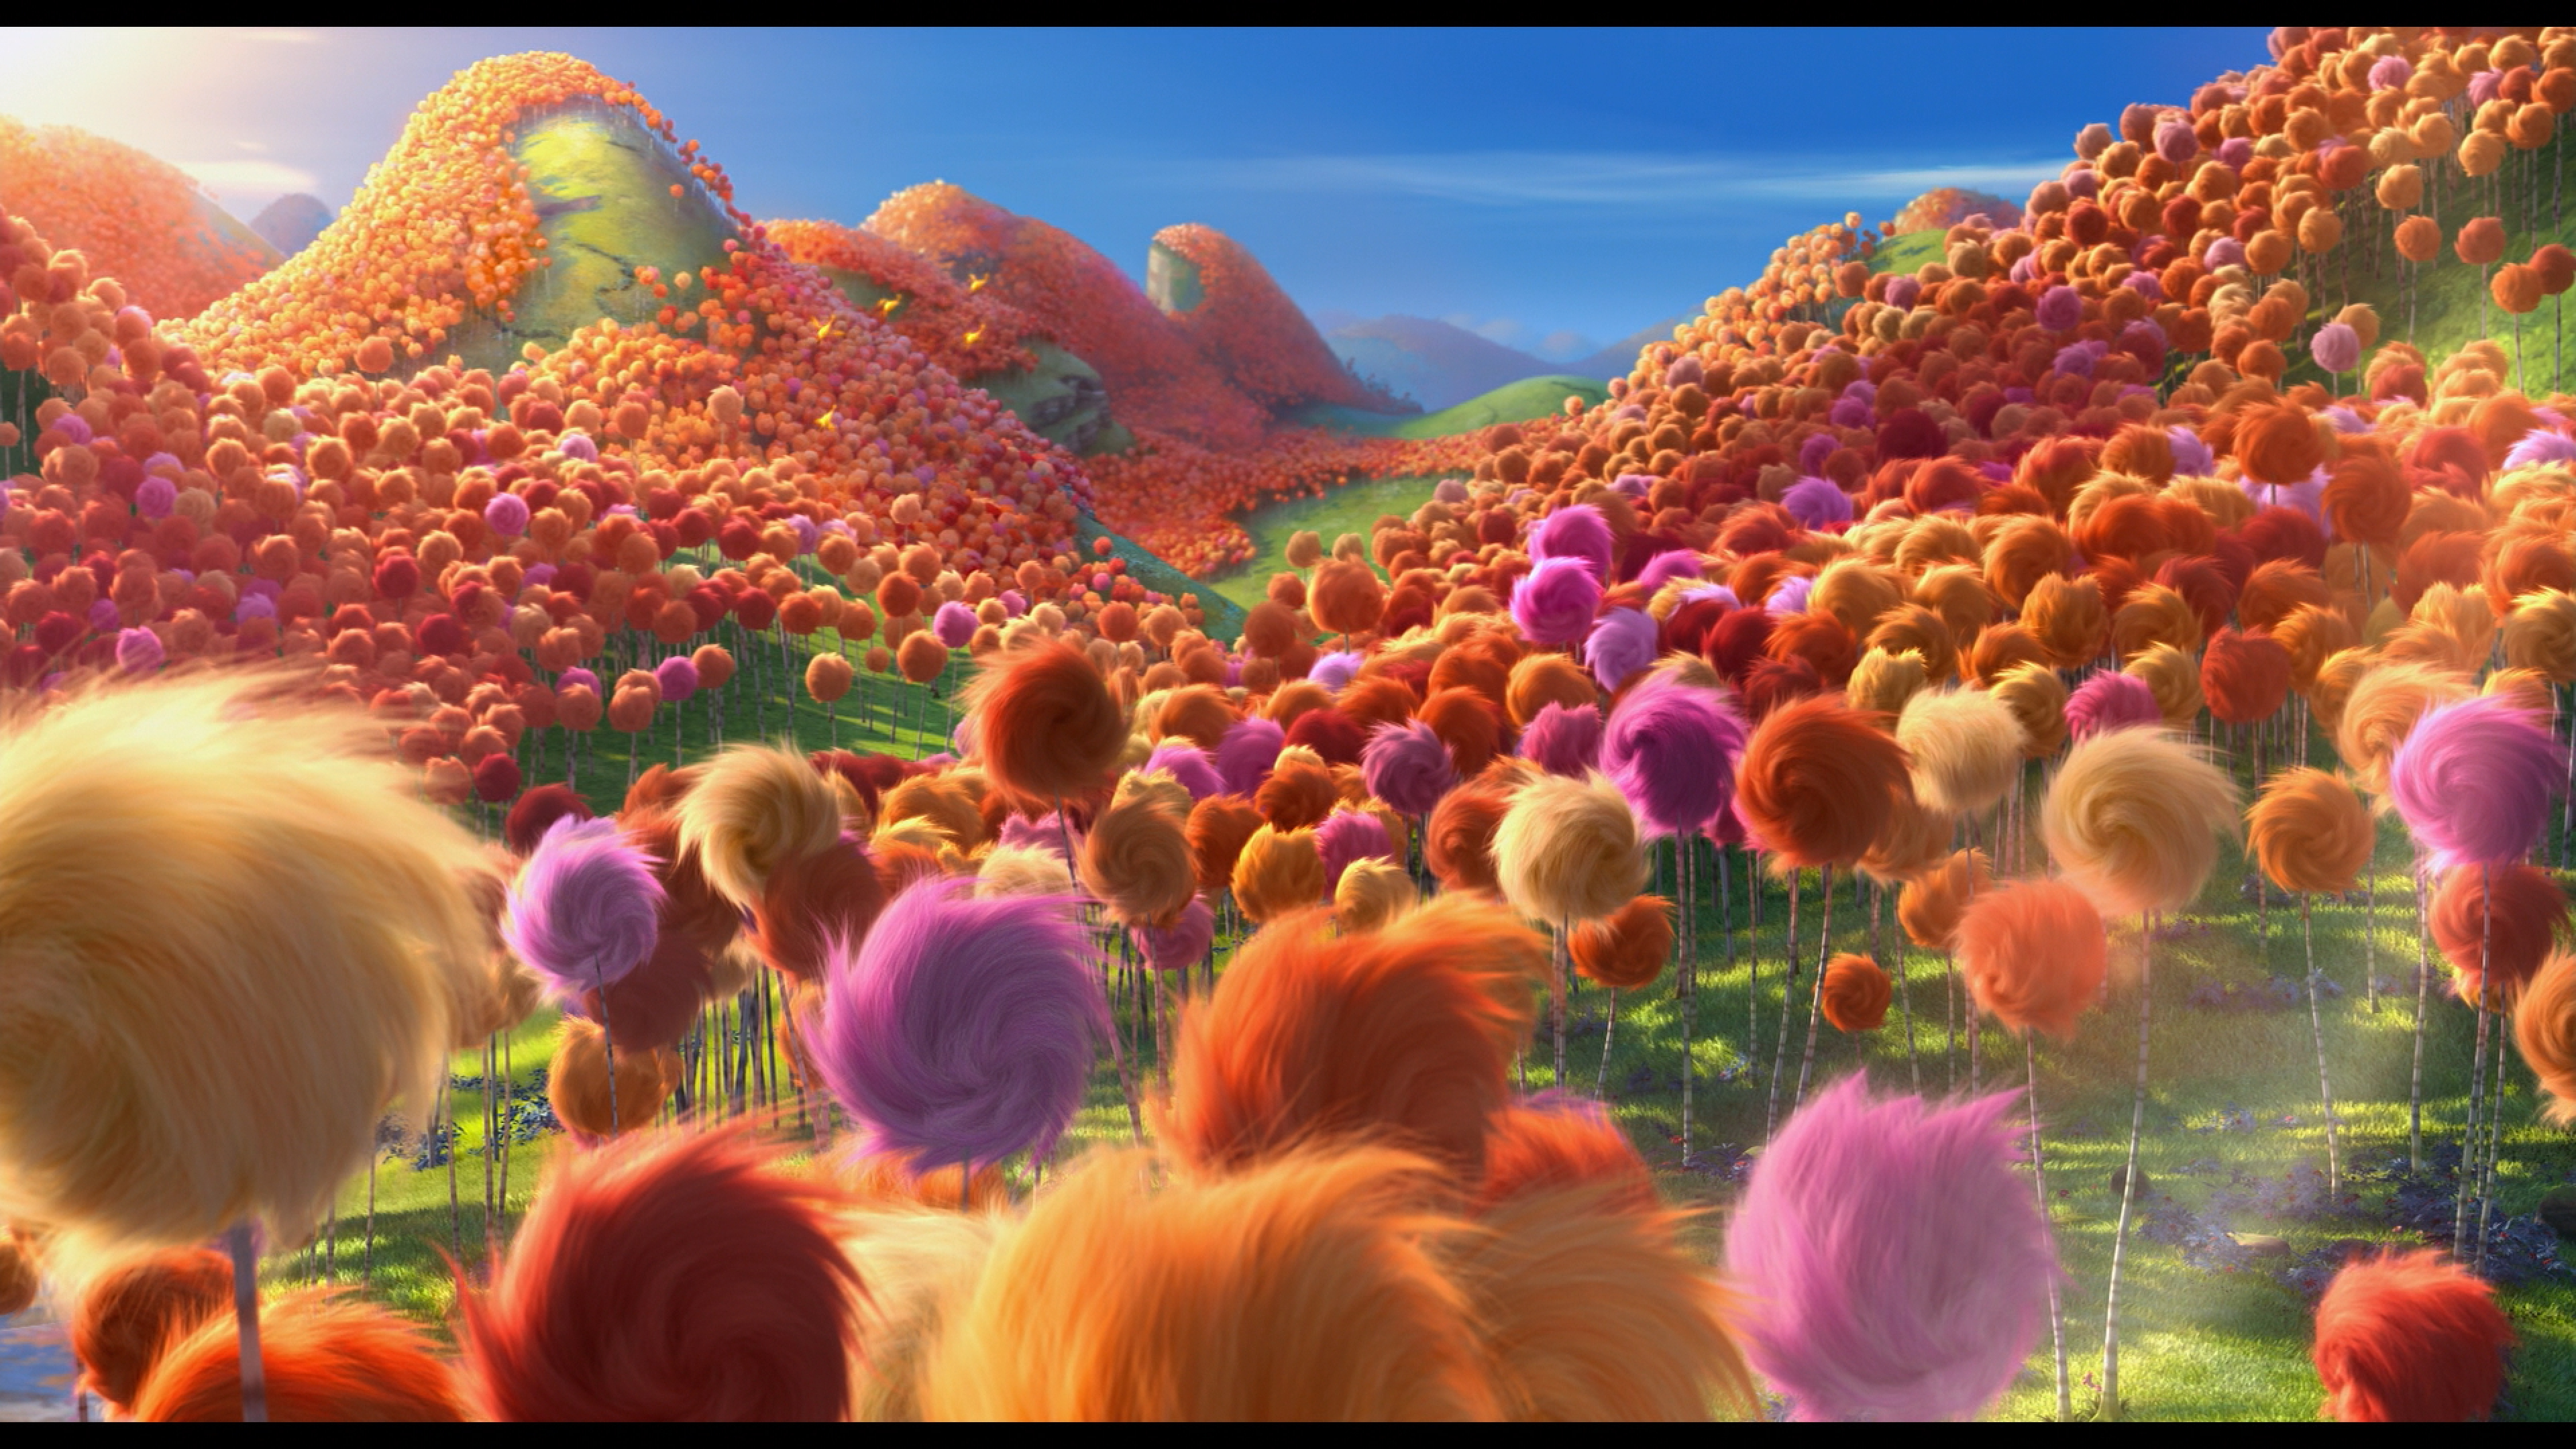 44 The Lorax HD Wallpapers | Backgrounds - Wallpaper Abyss